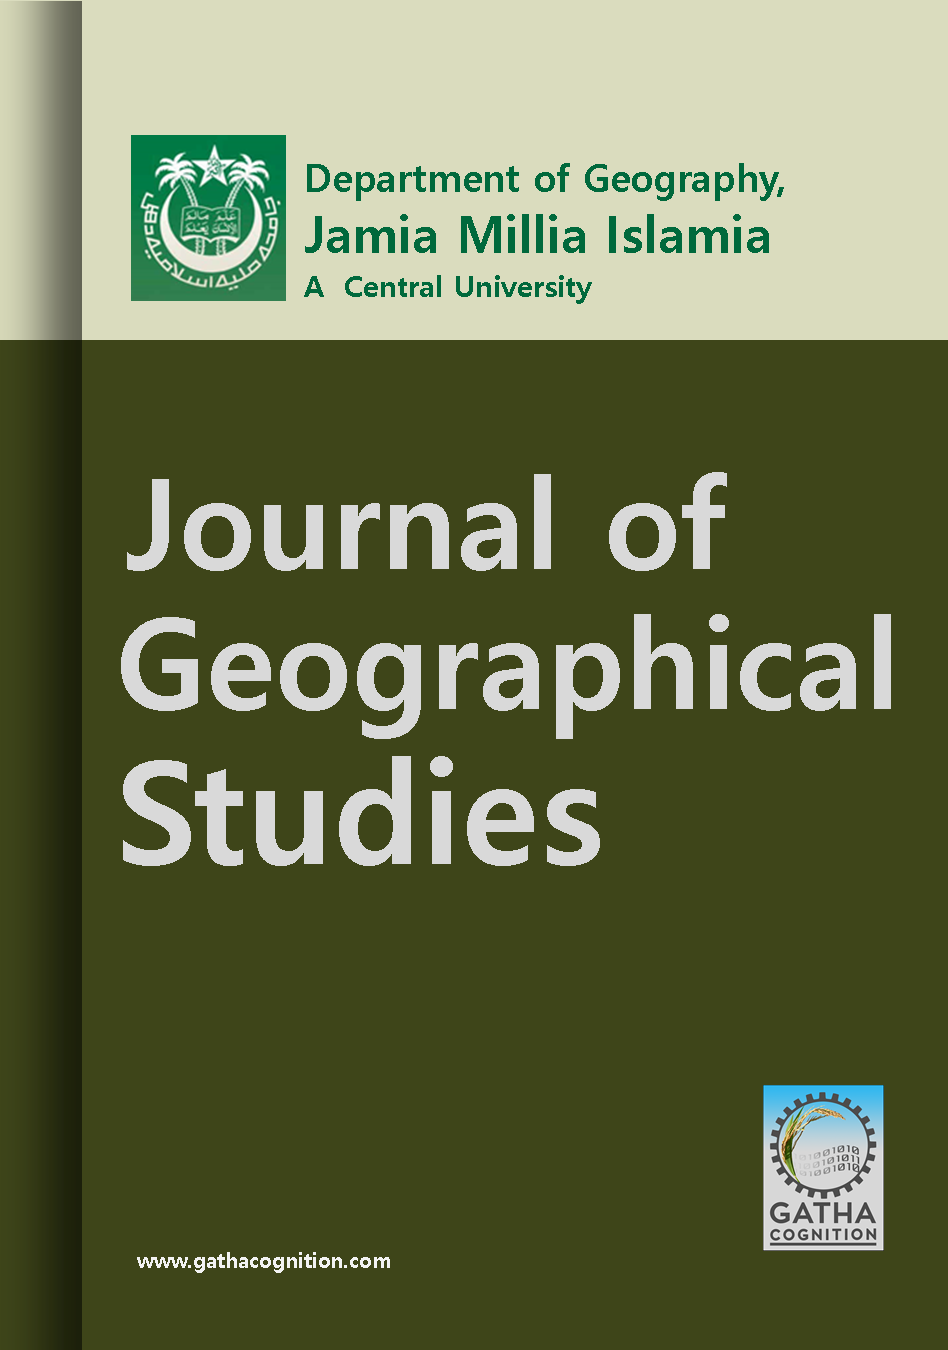 Journal of Geographical Studies